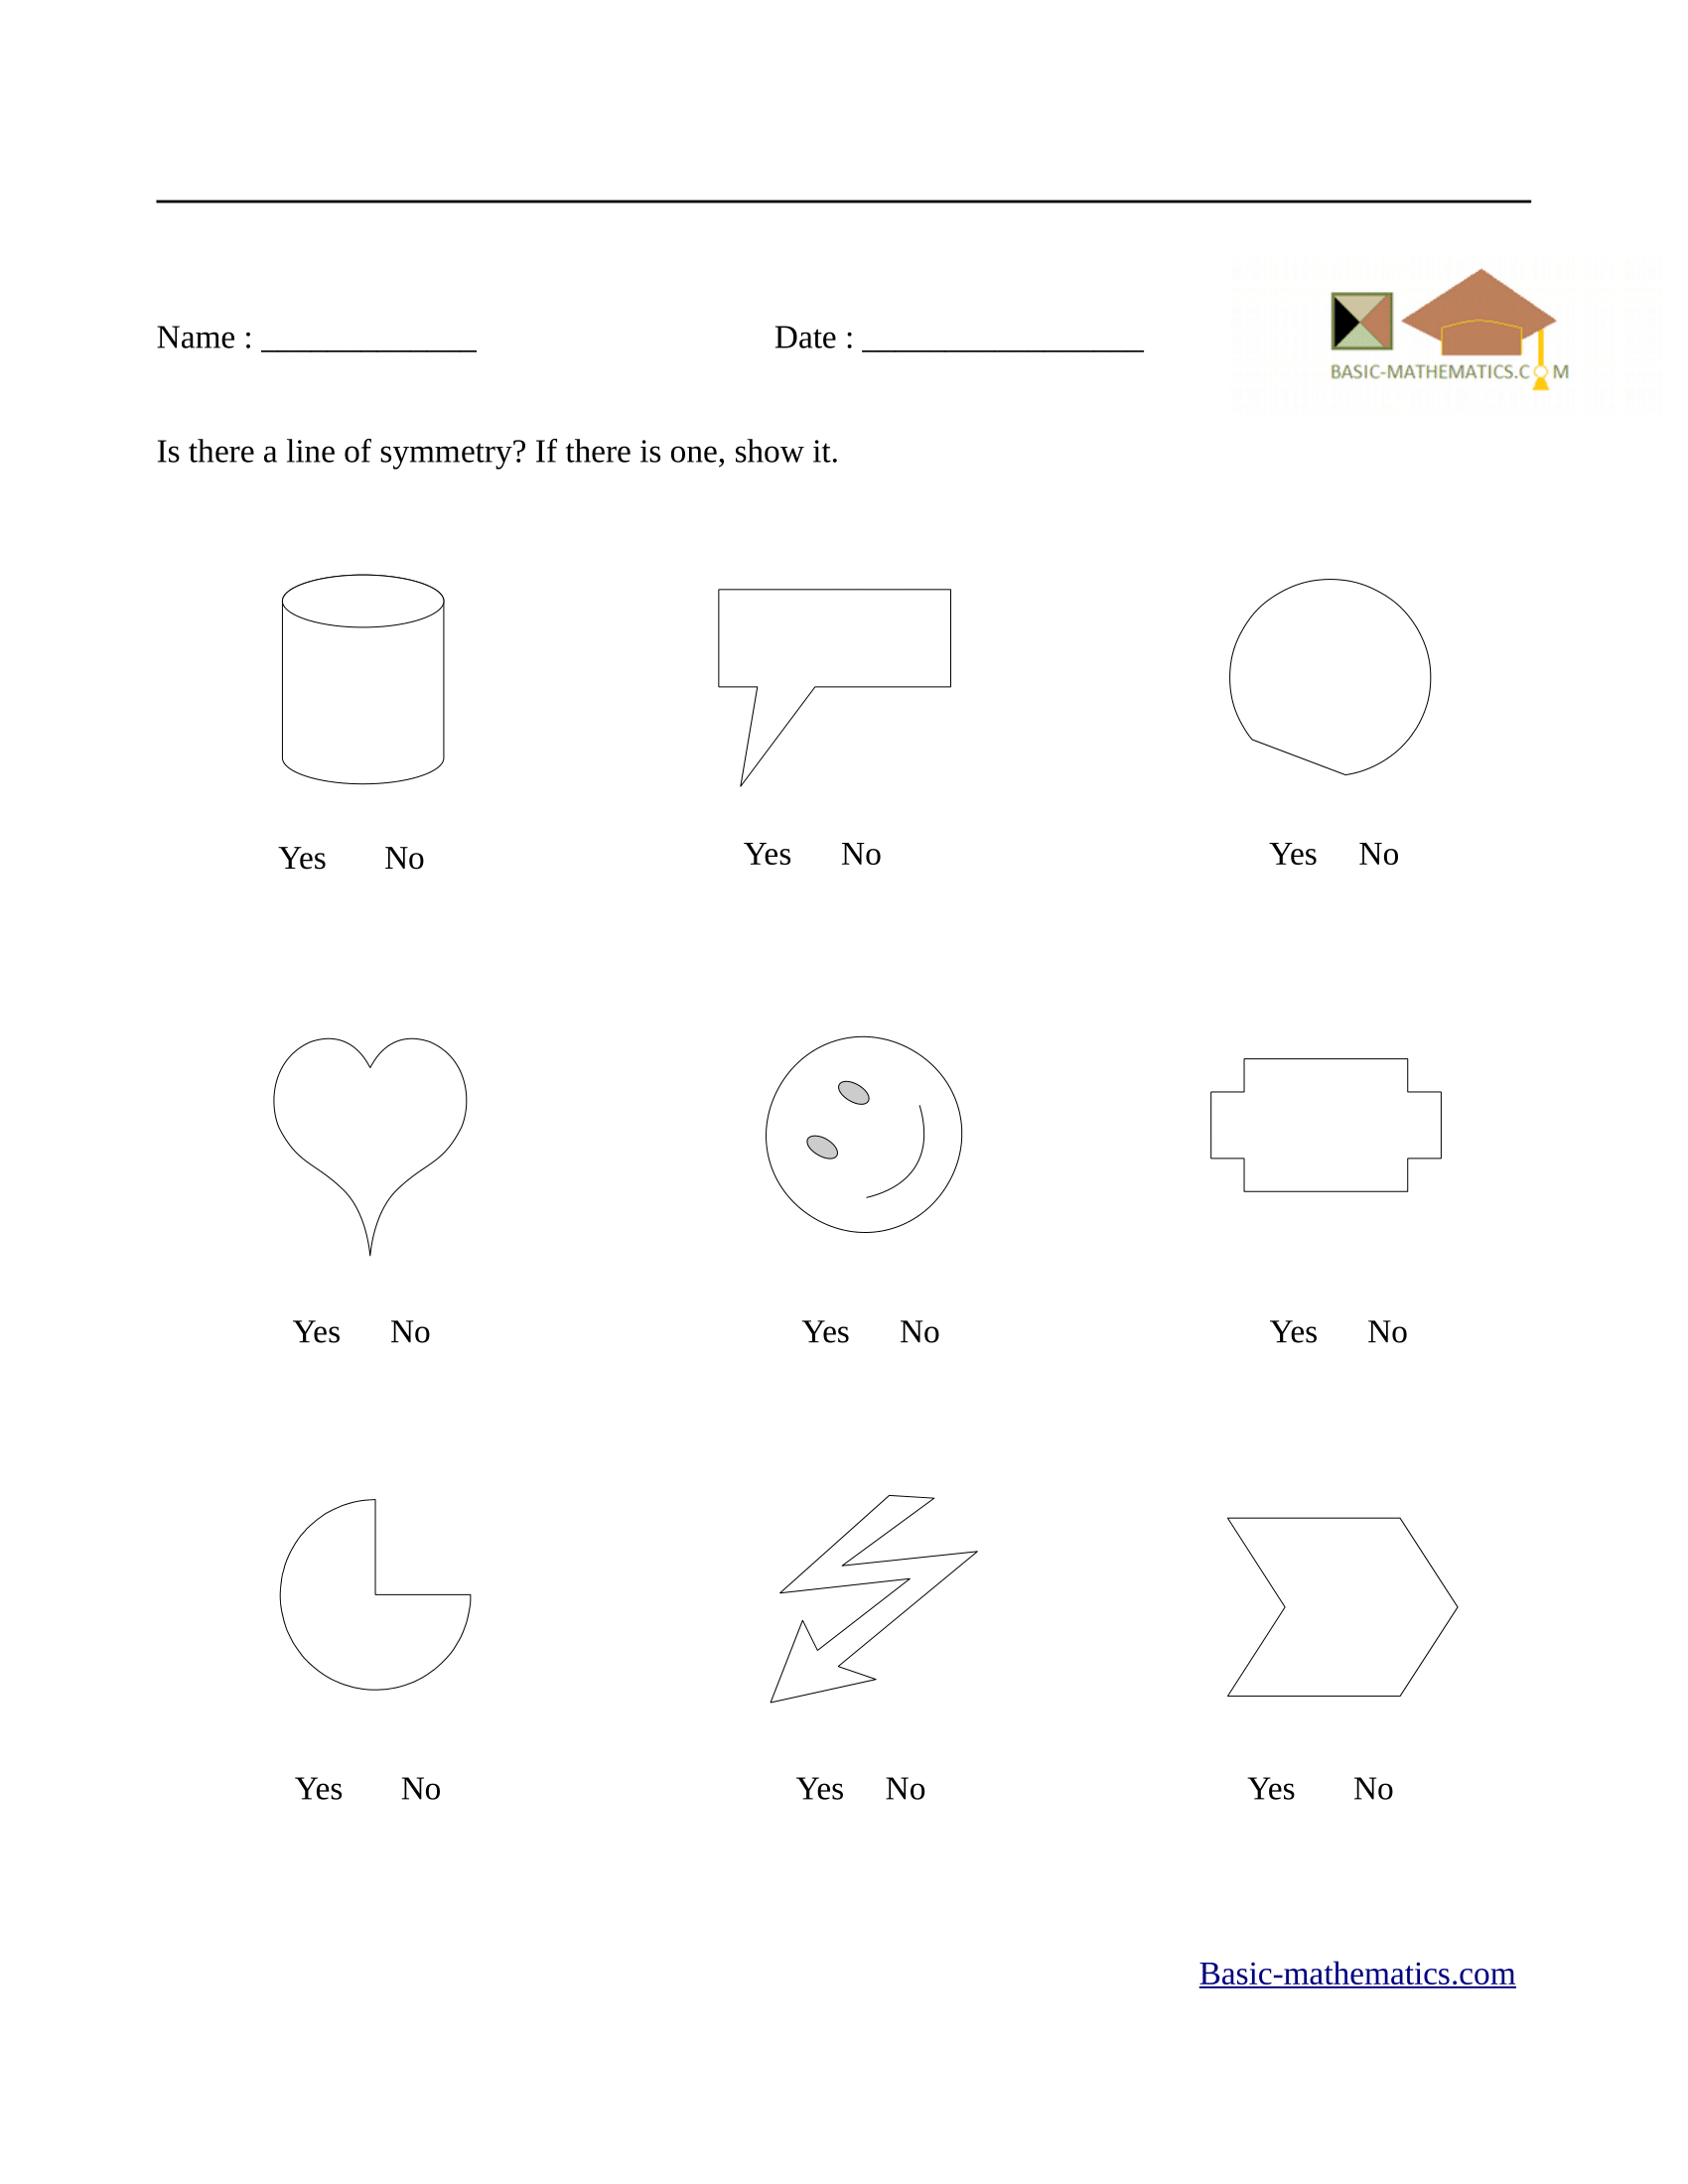 Lines of symmetry worksheet